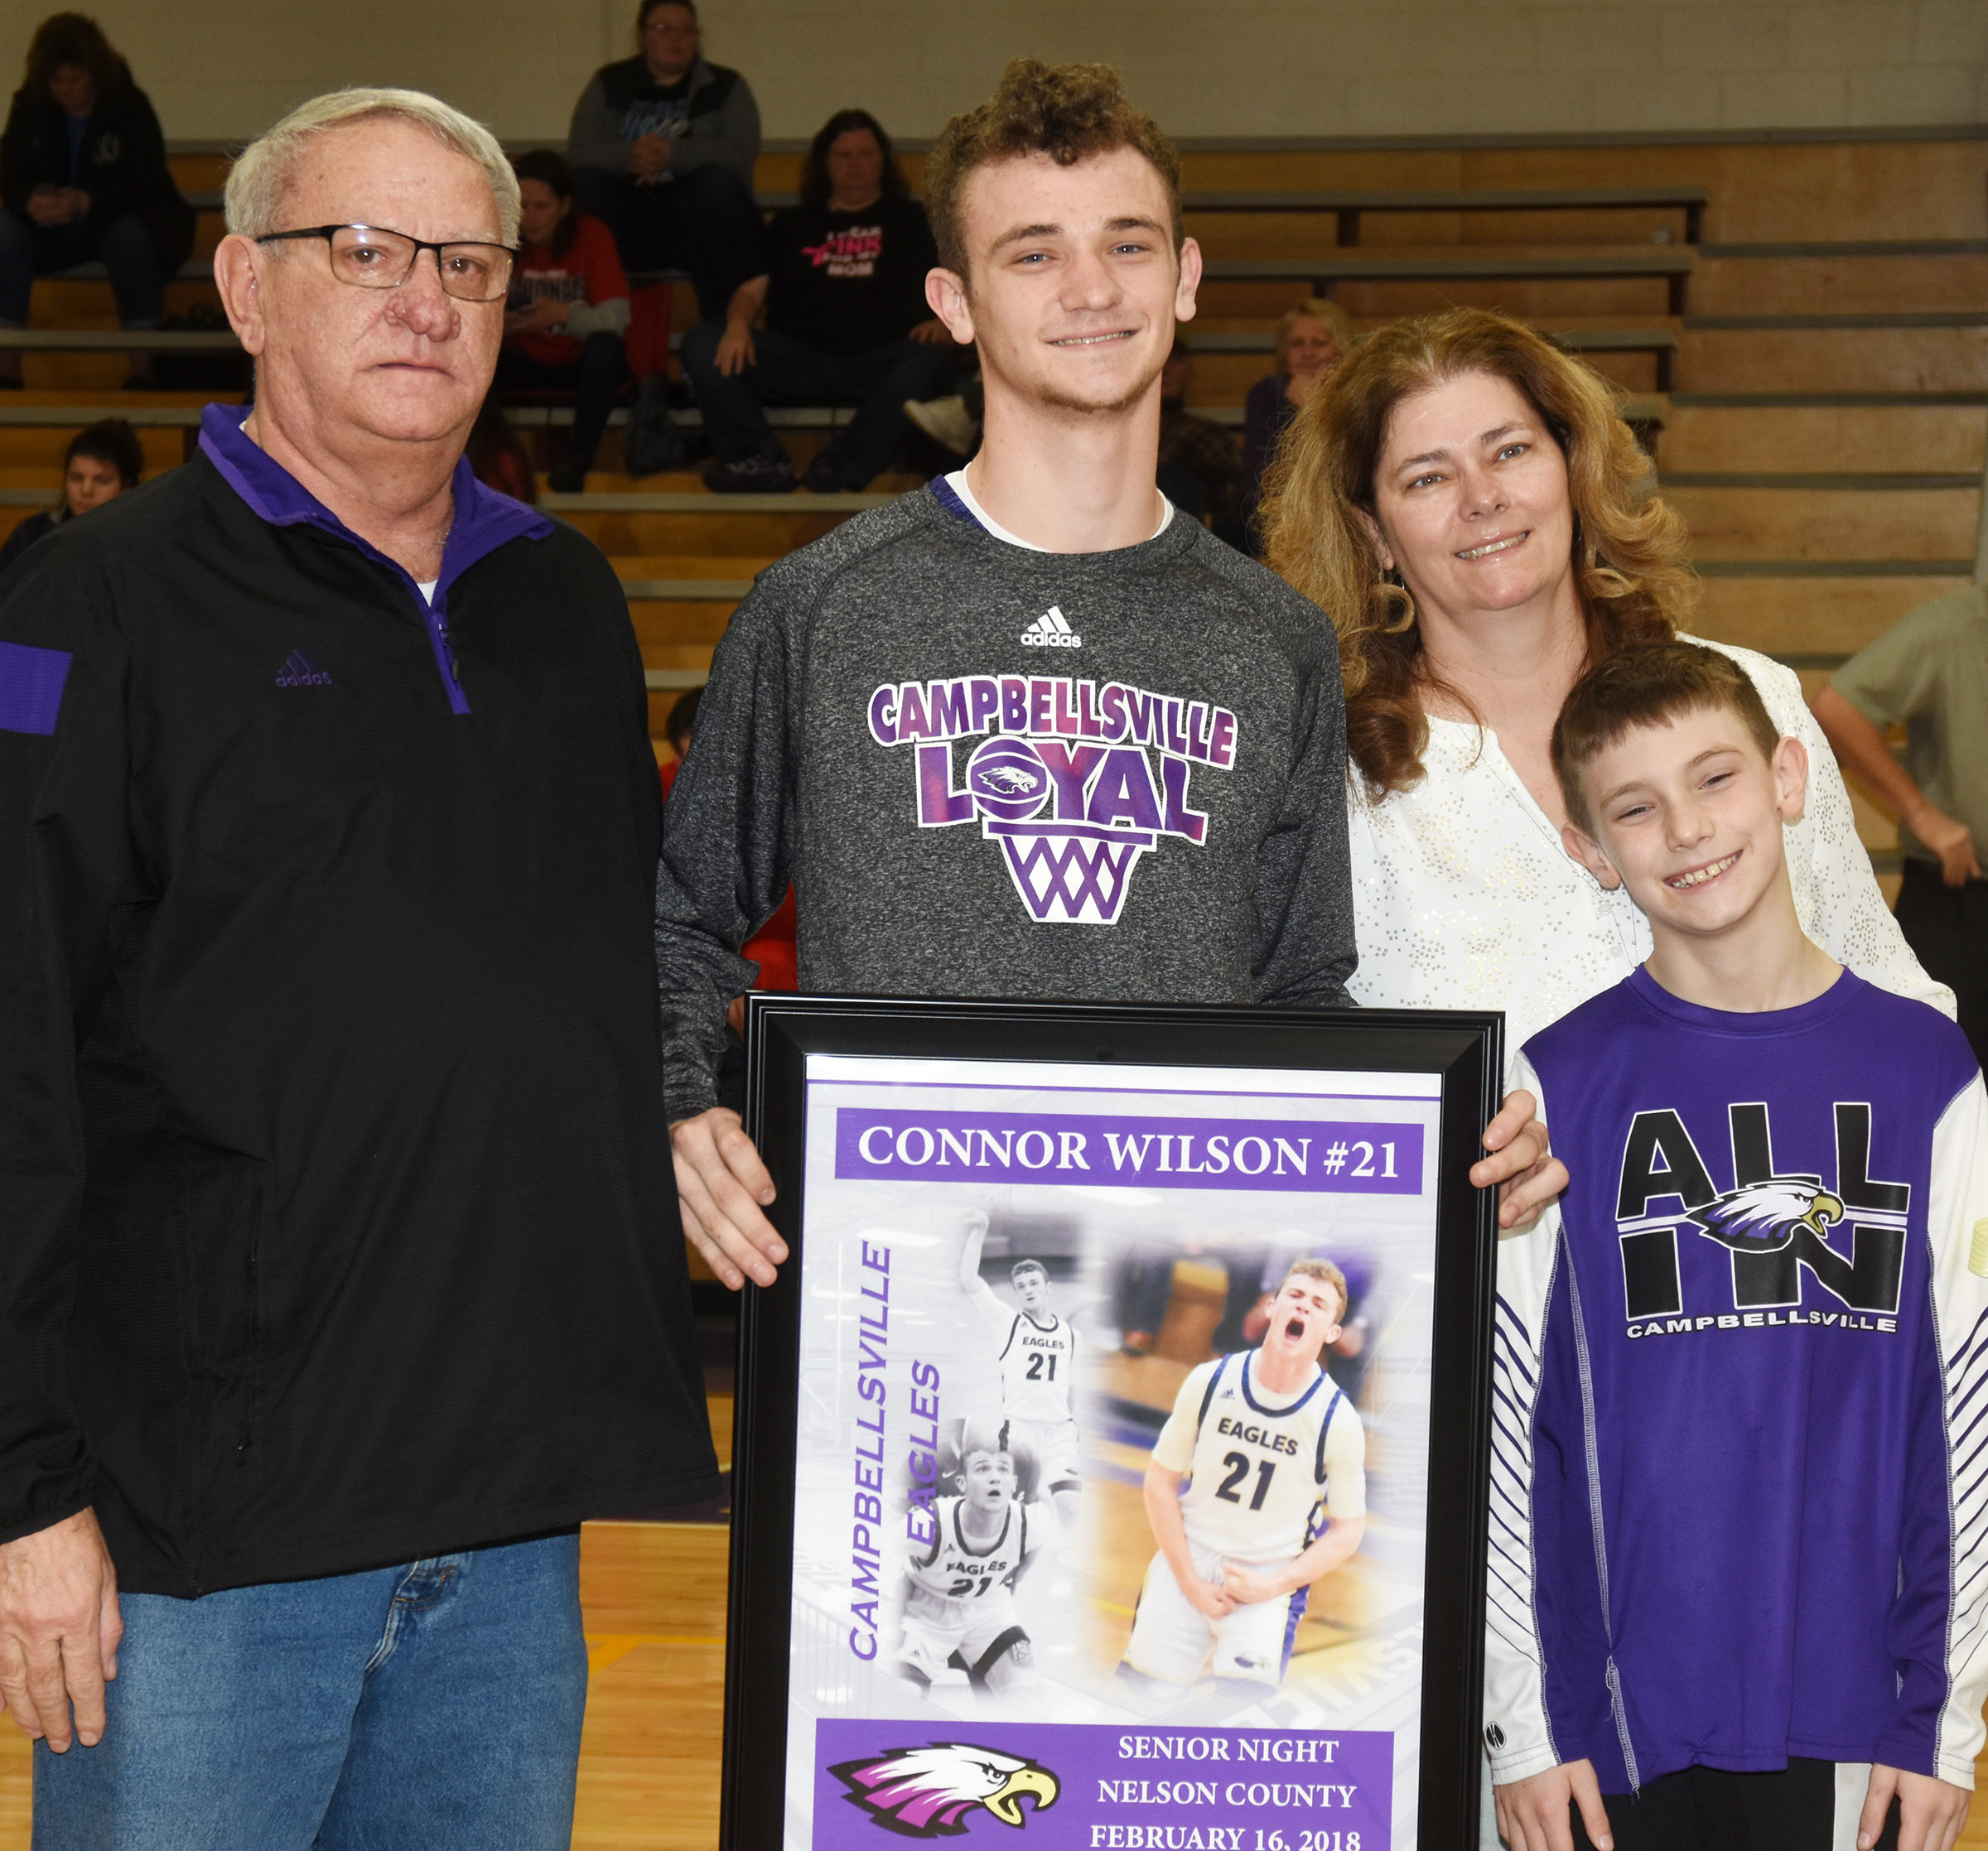 CHS senior boys' basketball player Connor Wilson is honored. He is pictured with his parents Rick and Tammy Wilson, and brother Aidan.